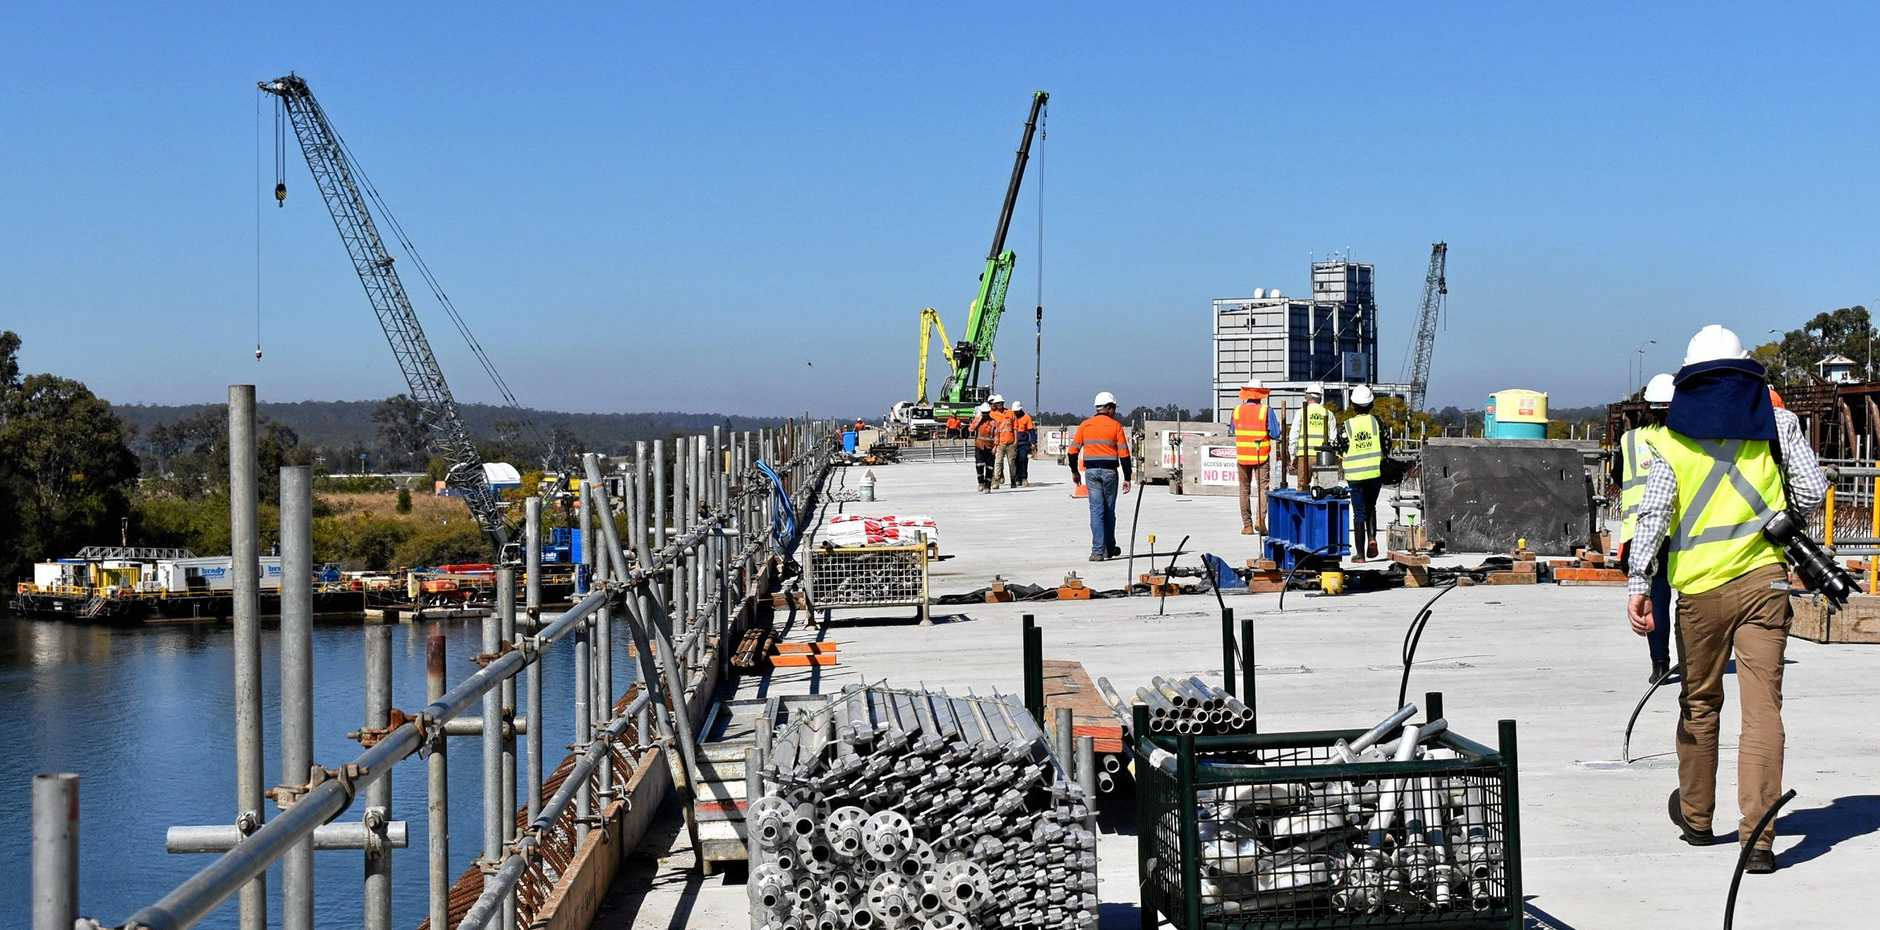 ALMOST THERE: The final segment of the new Grafton bridge has been lifted into place signalling the final stages of its construction.